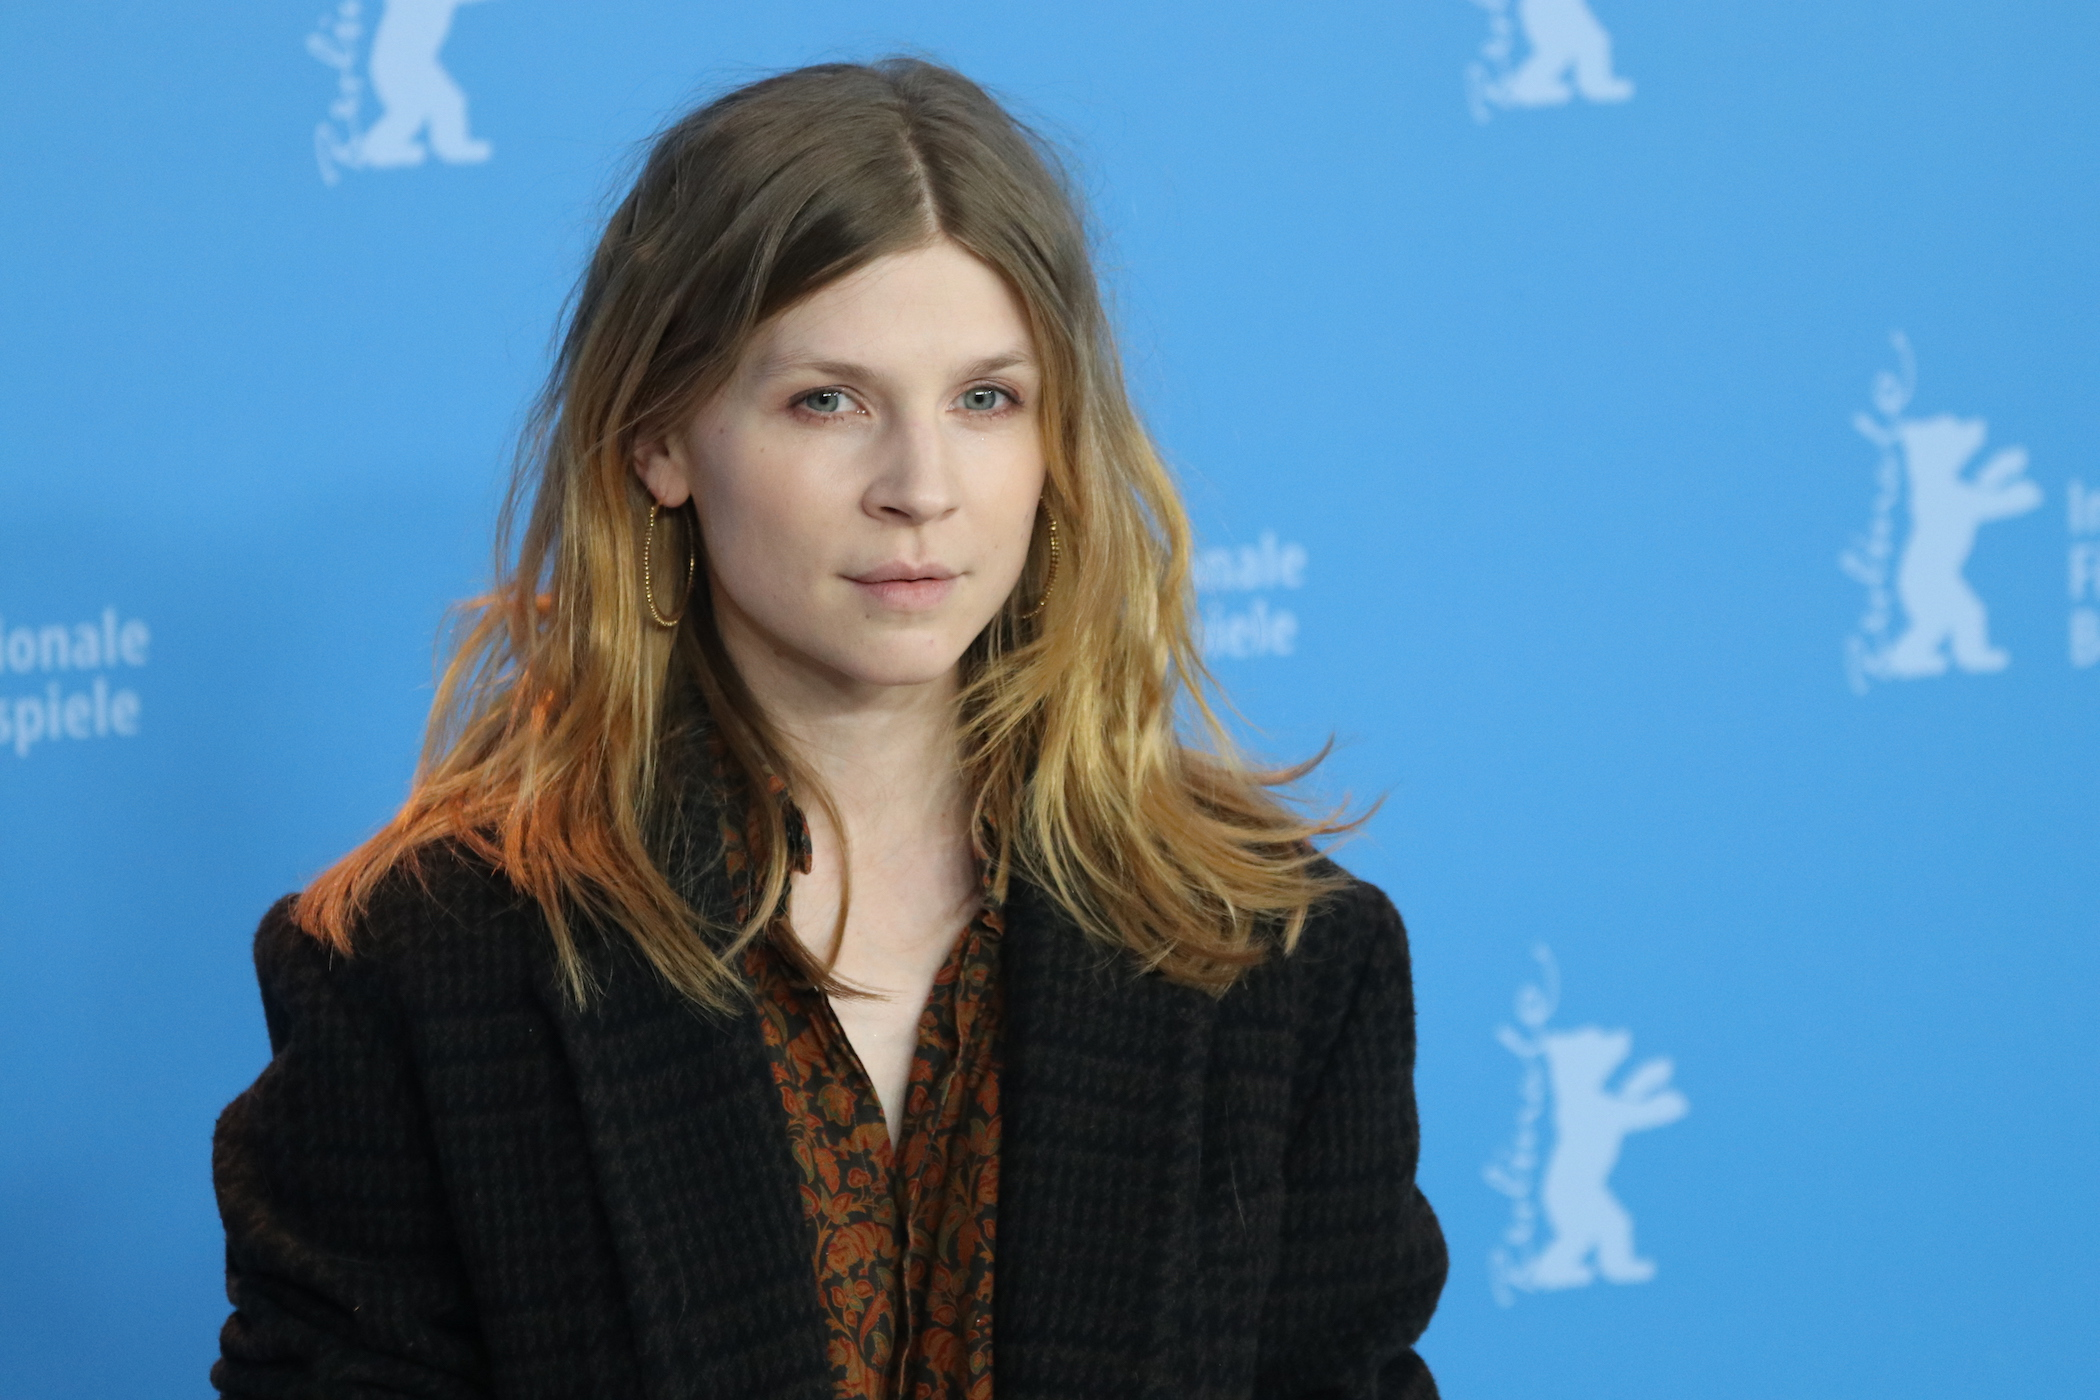 Berlino 2017: uno scatto di Clémence Poésy al photocall di Final Portrait